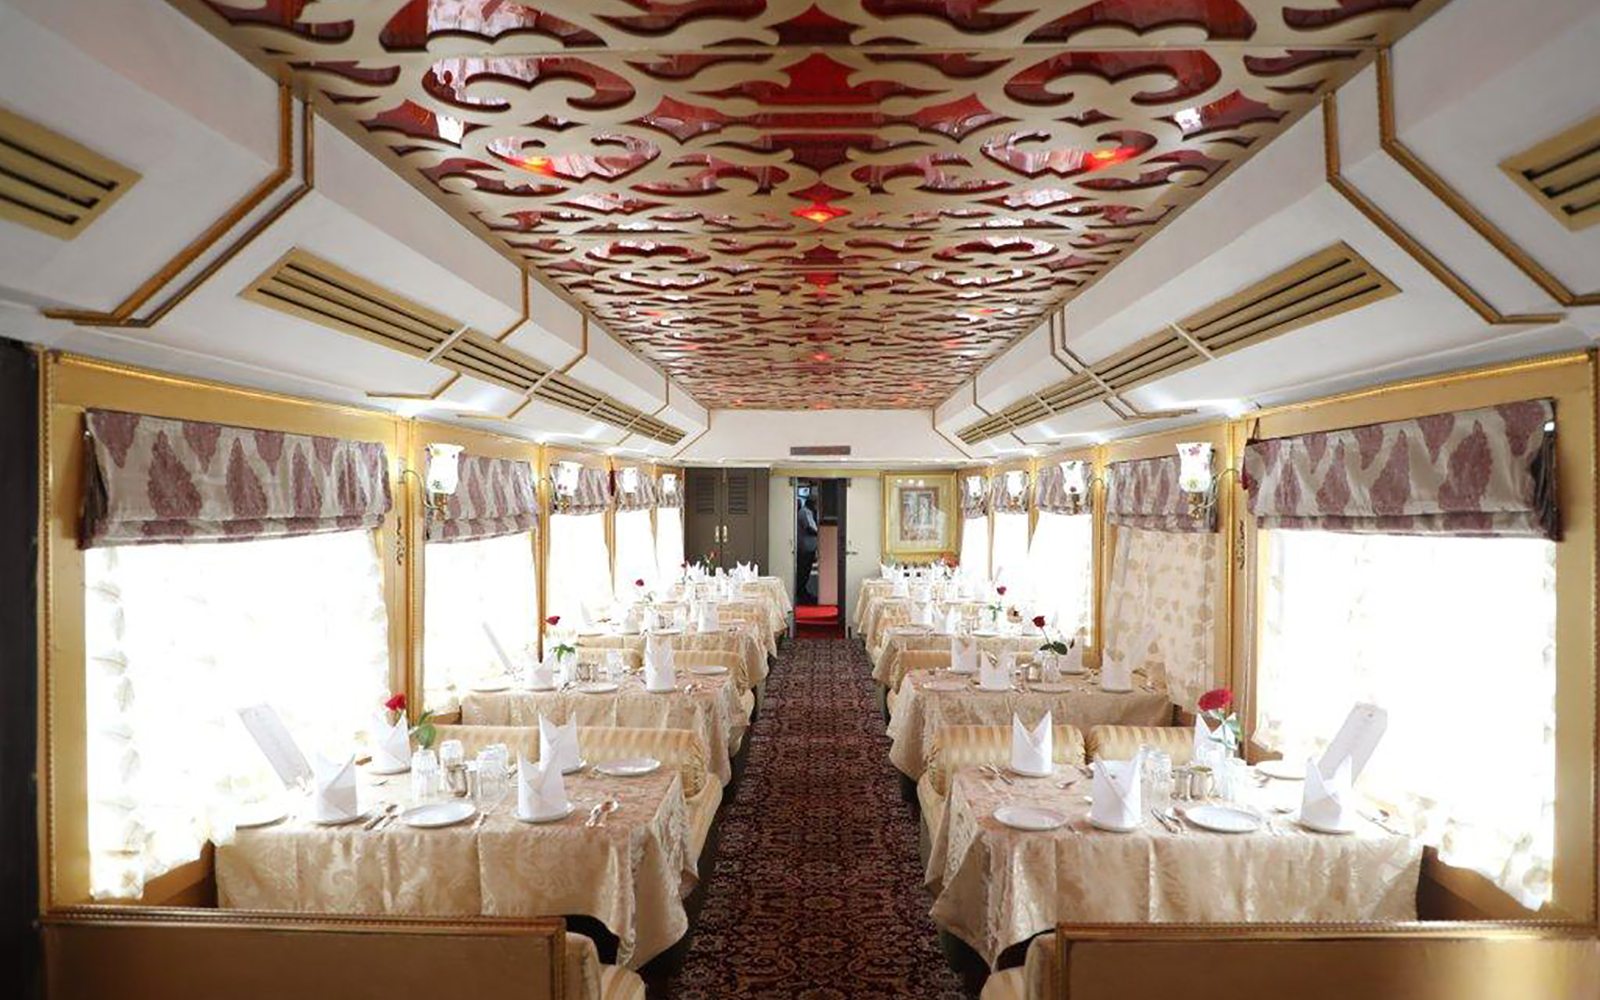 Dining Car on board the Palace on Wheels luxury train